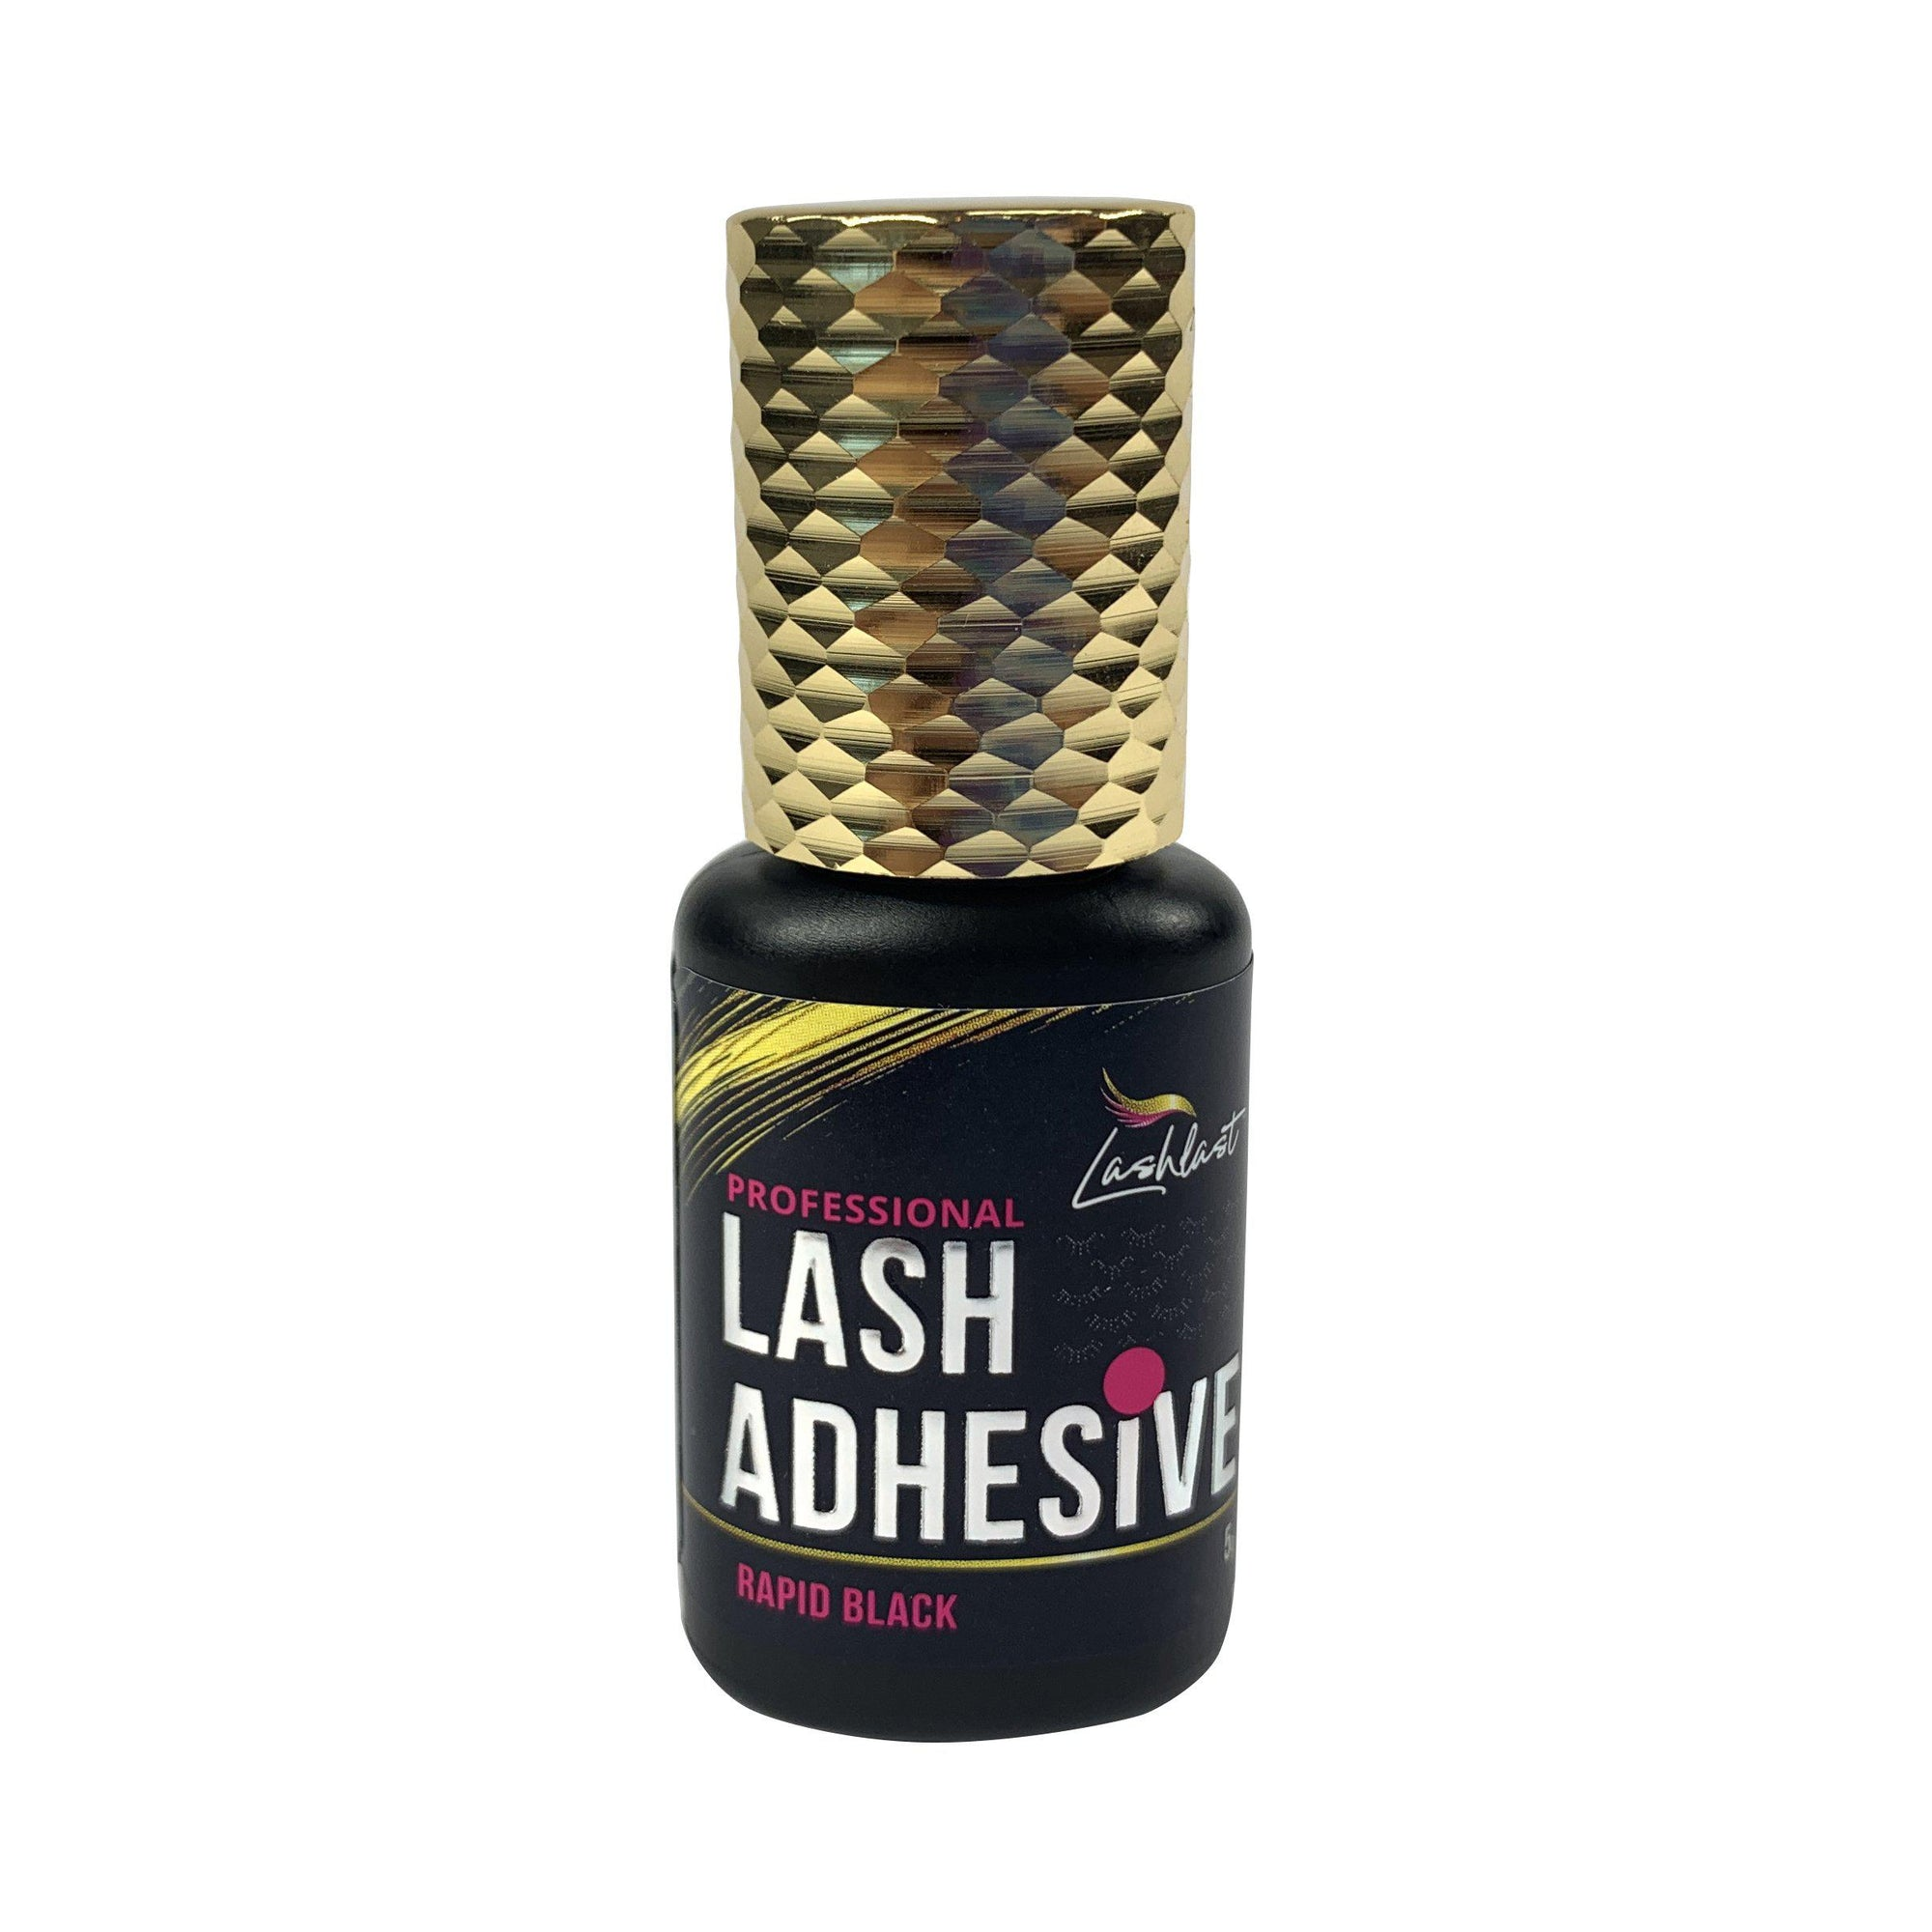 Lashlast™ Rapid Black Adhesive-eyelash extension adhesive-Lash Tribe